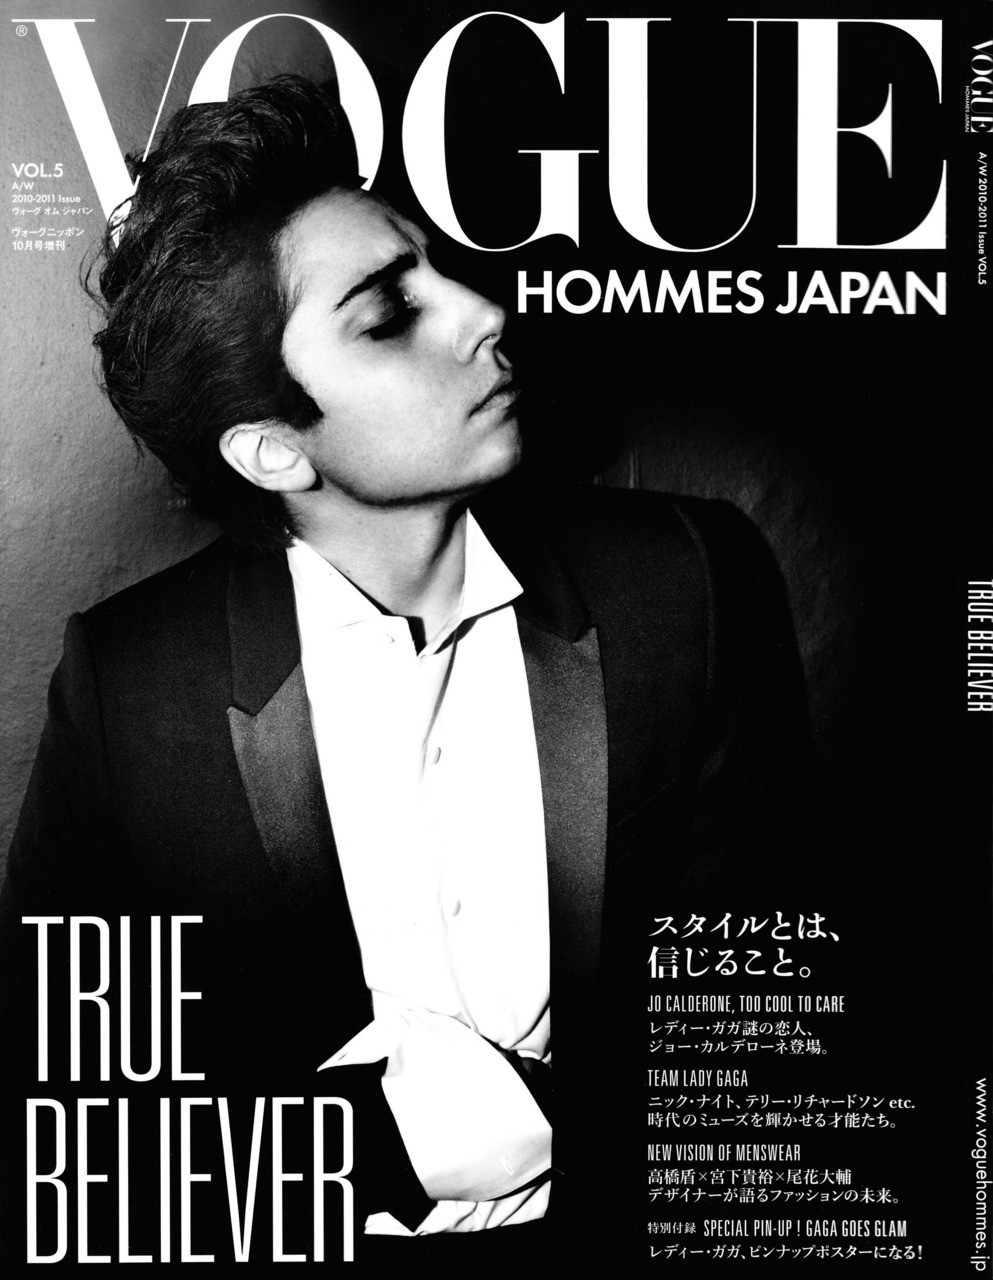 Jo Calderone on the cover of Vogue Hommes Japan, Vol. 5